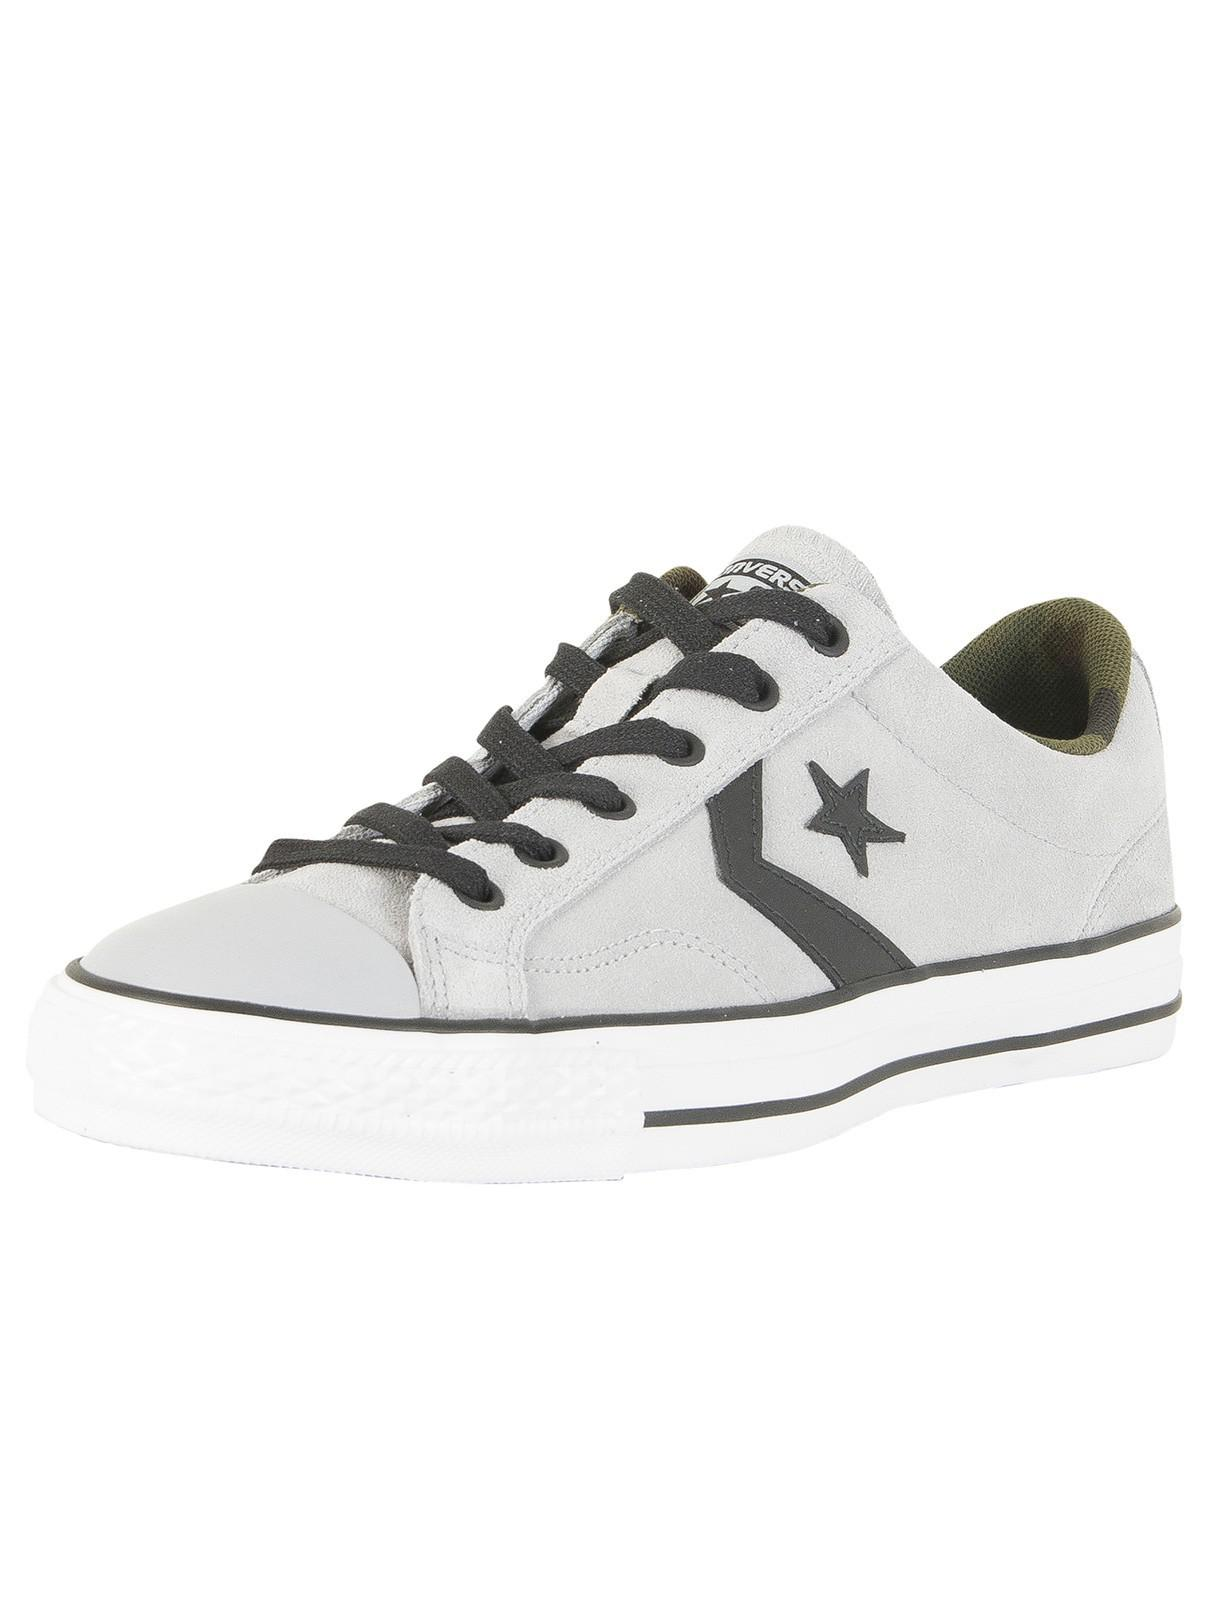 2873e2c6a97254 Lyst - Converse Wolf Grey black camo Star Player Ox Suede Trainers ...